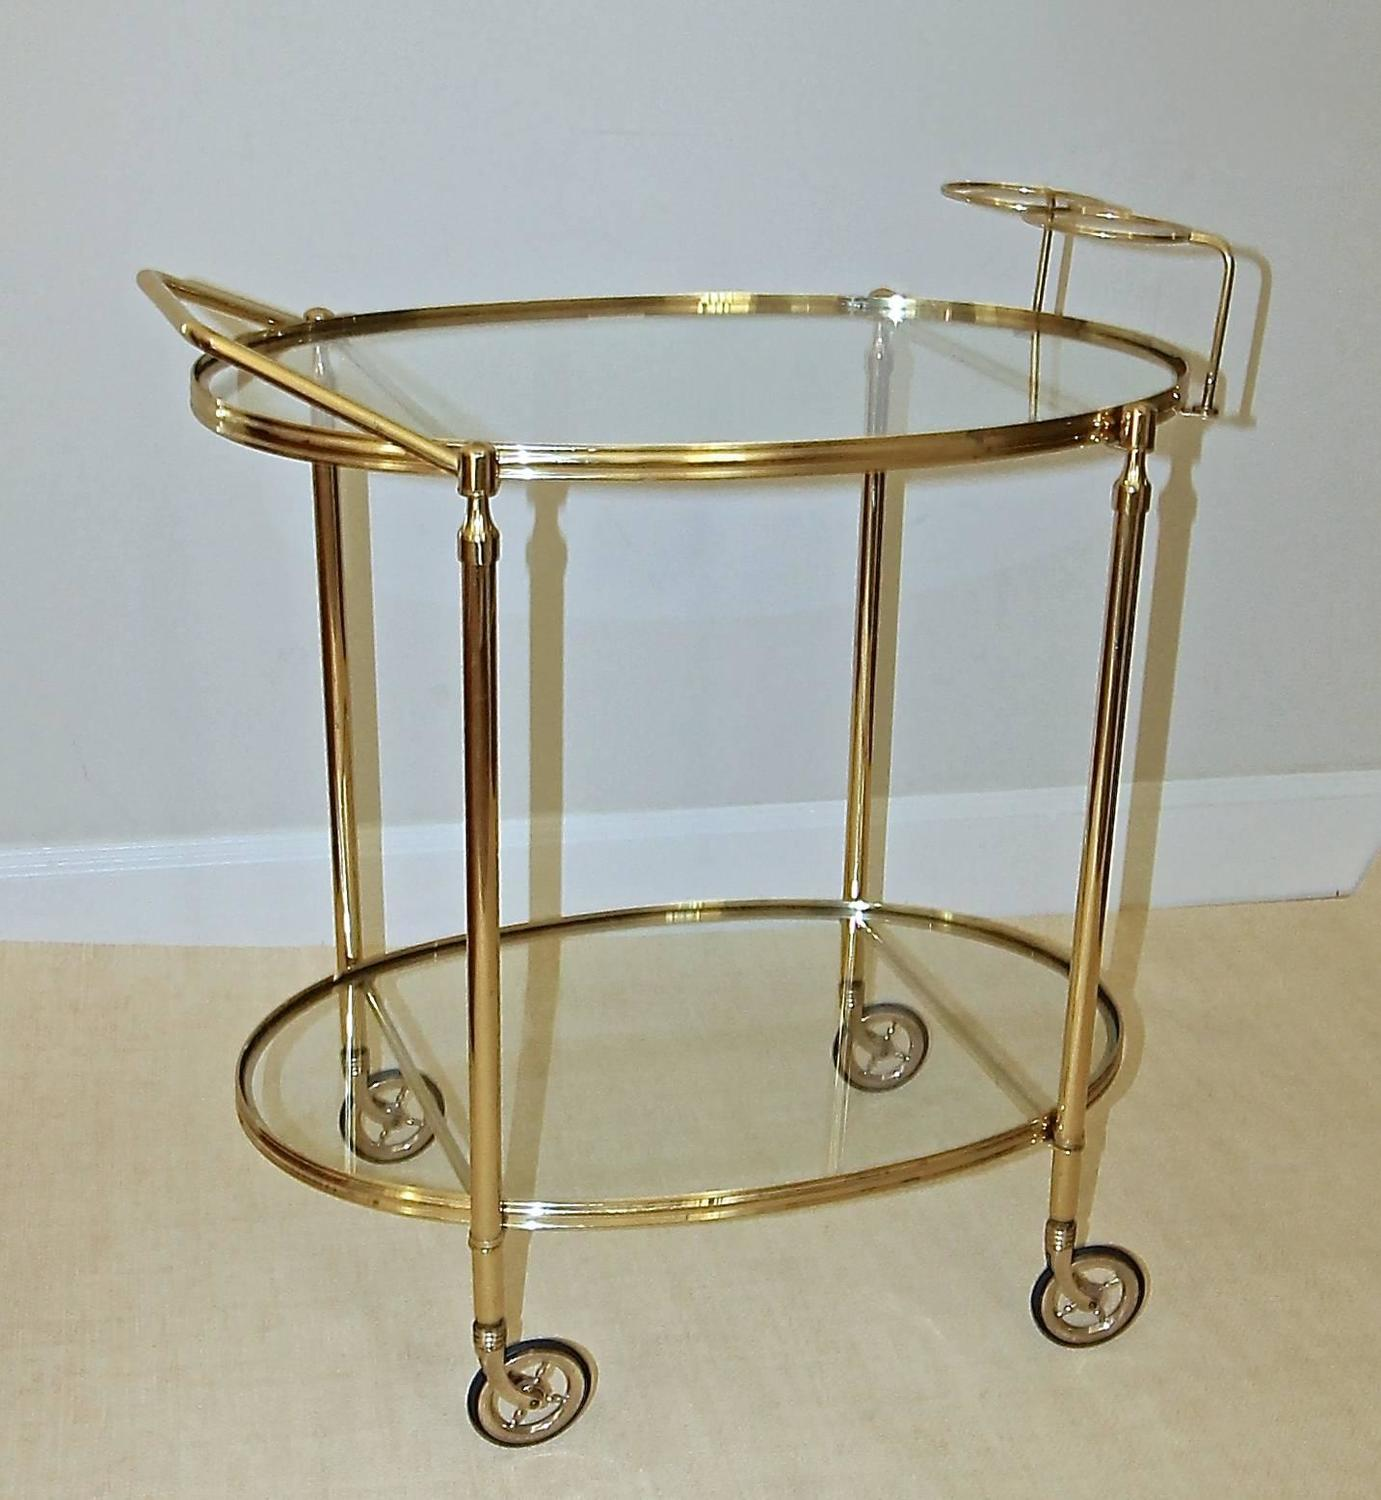 Italian Hand Crafted Brass Bar Cart For Sale at 1stdibs